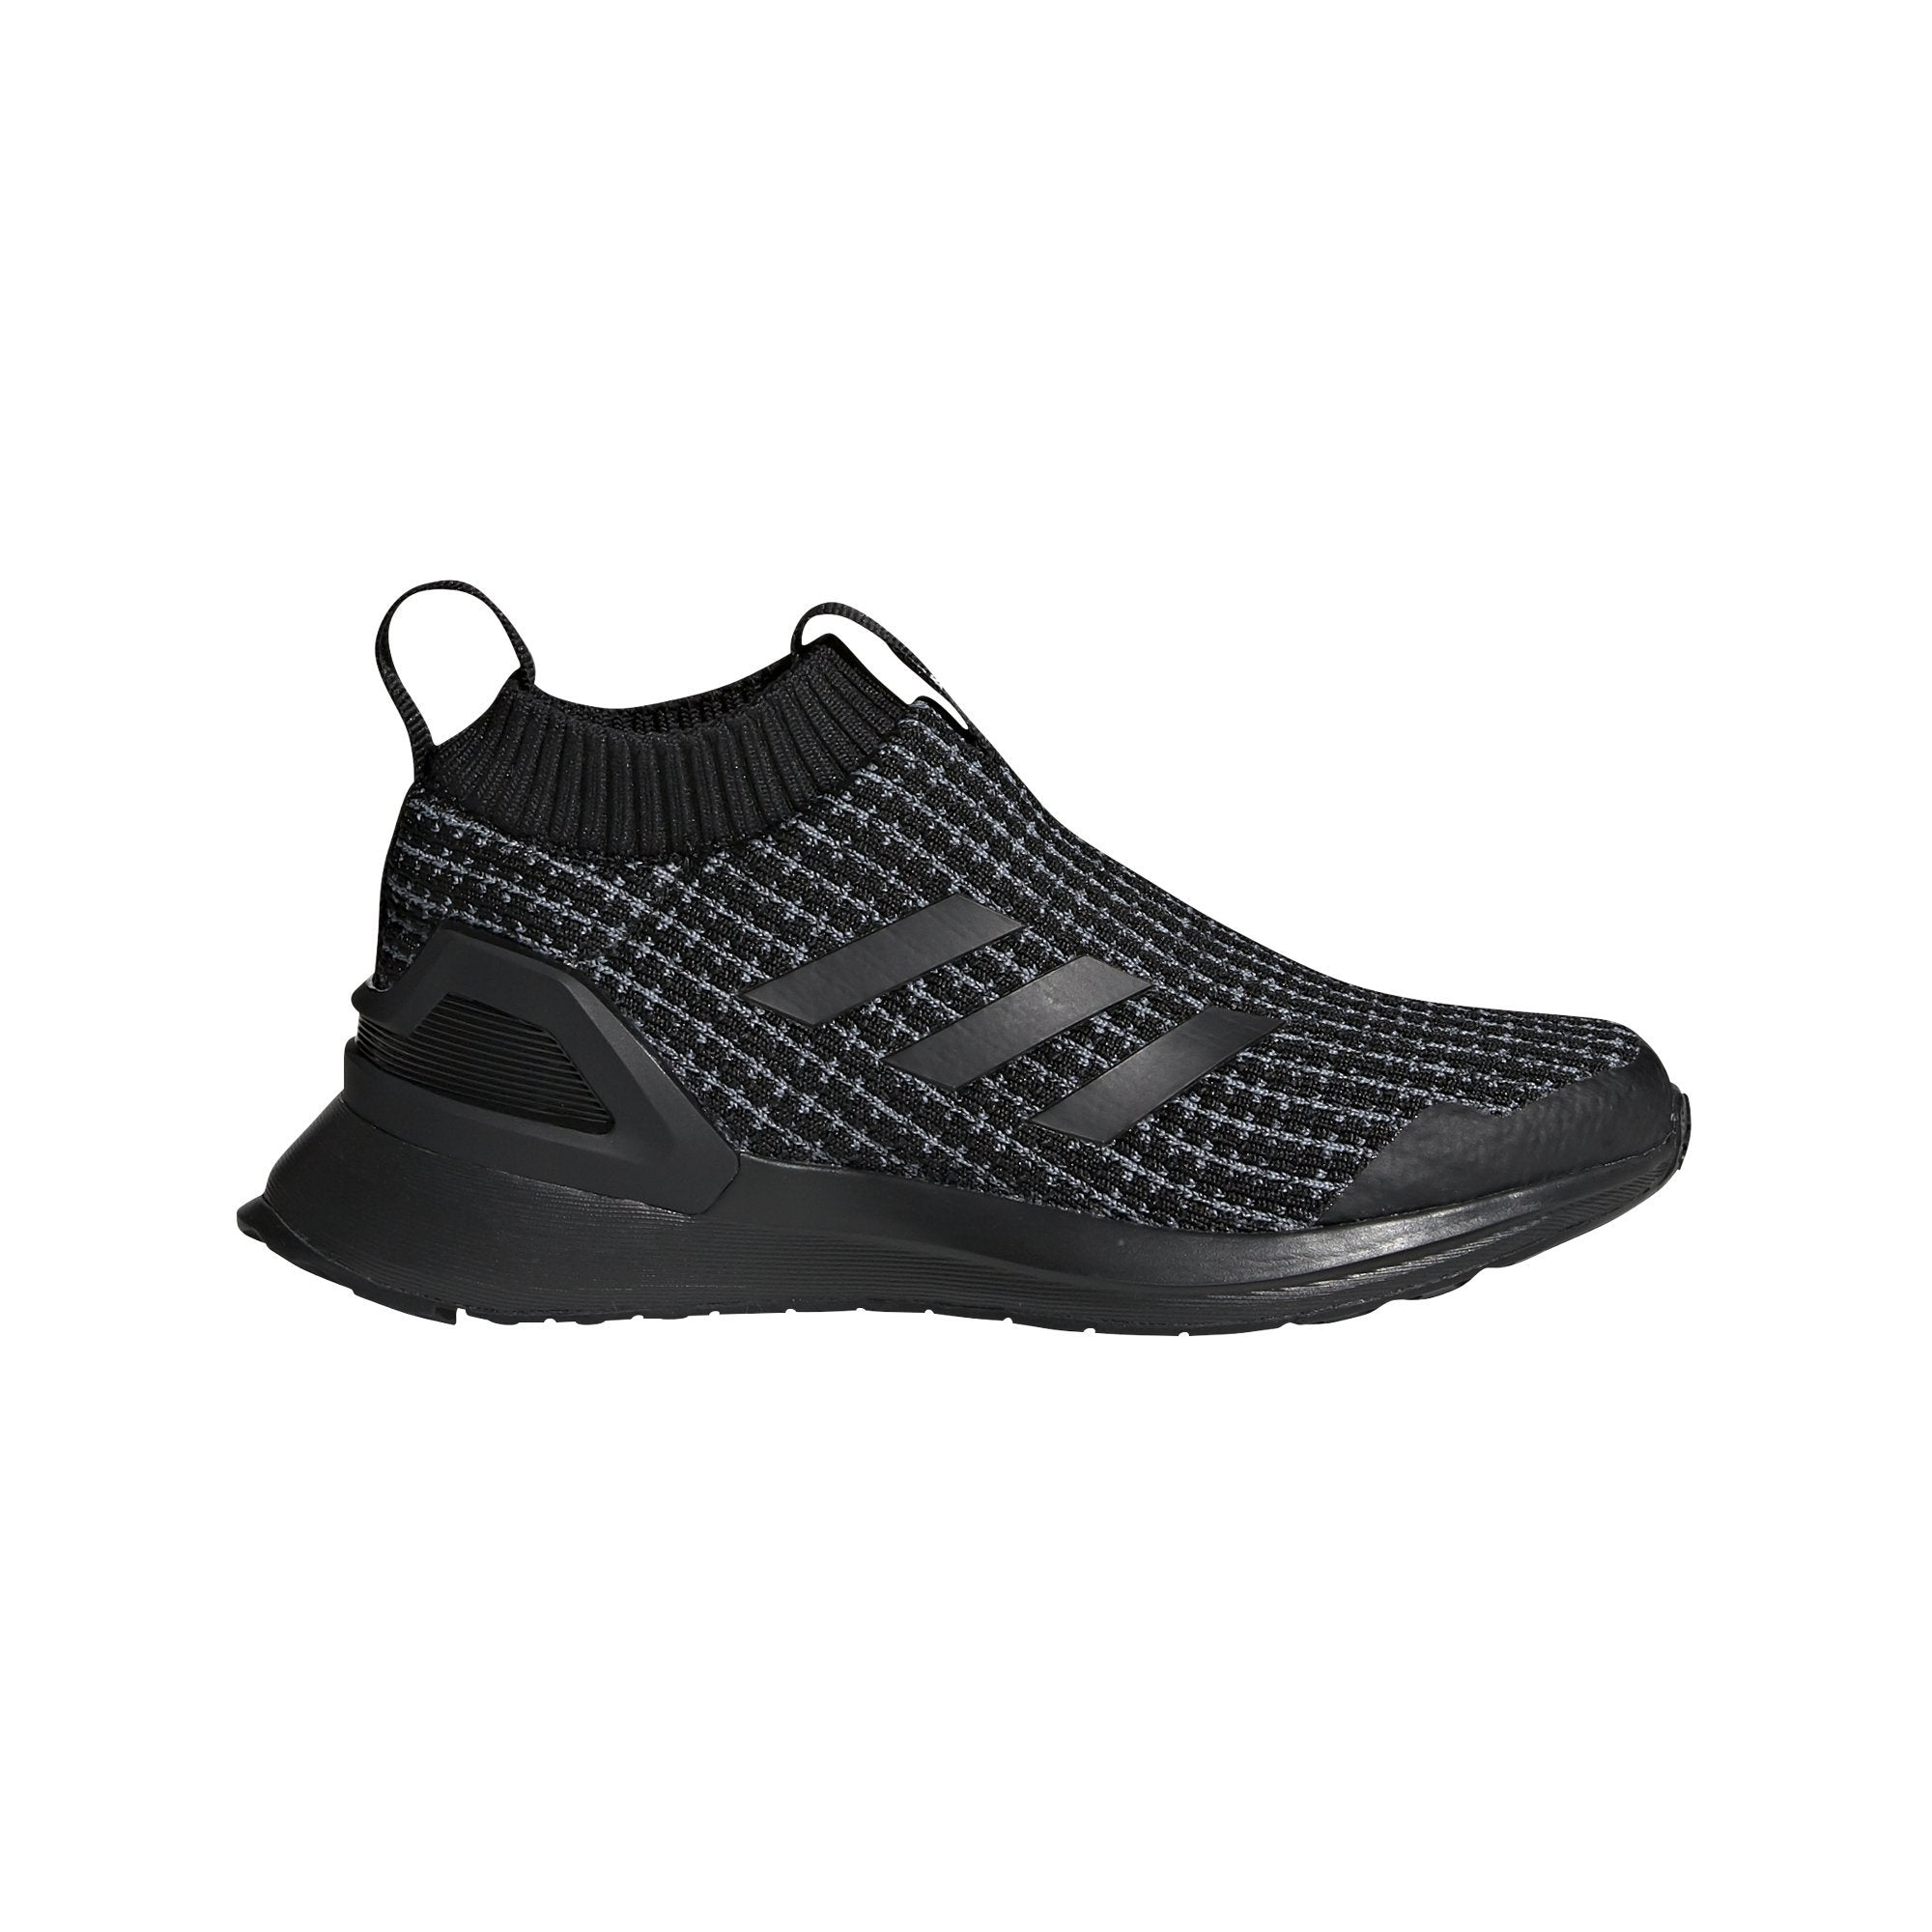 Adidas Kids RapidaRun LL Shoes - core black/core black/ftwr white SP-FOOTWEAR-KIDS Adidas